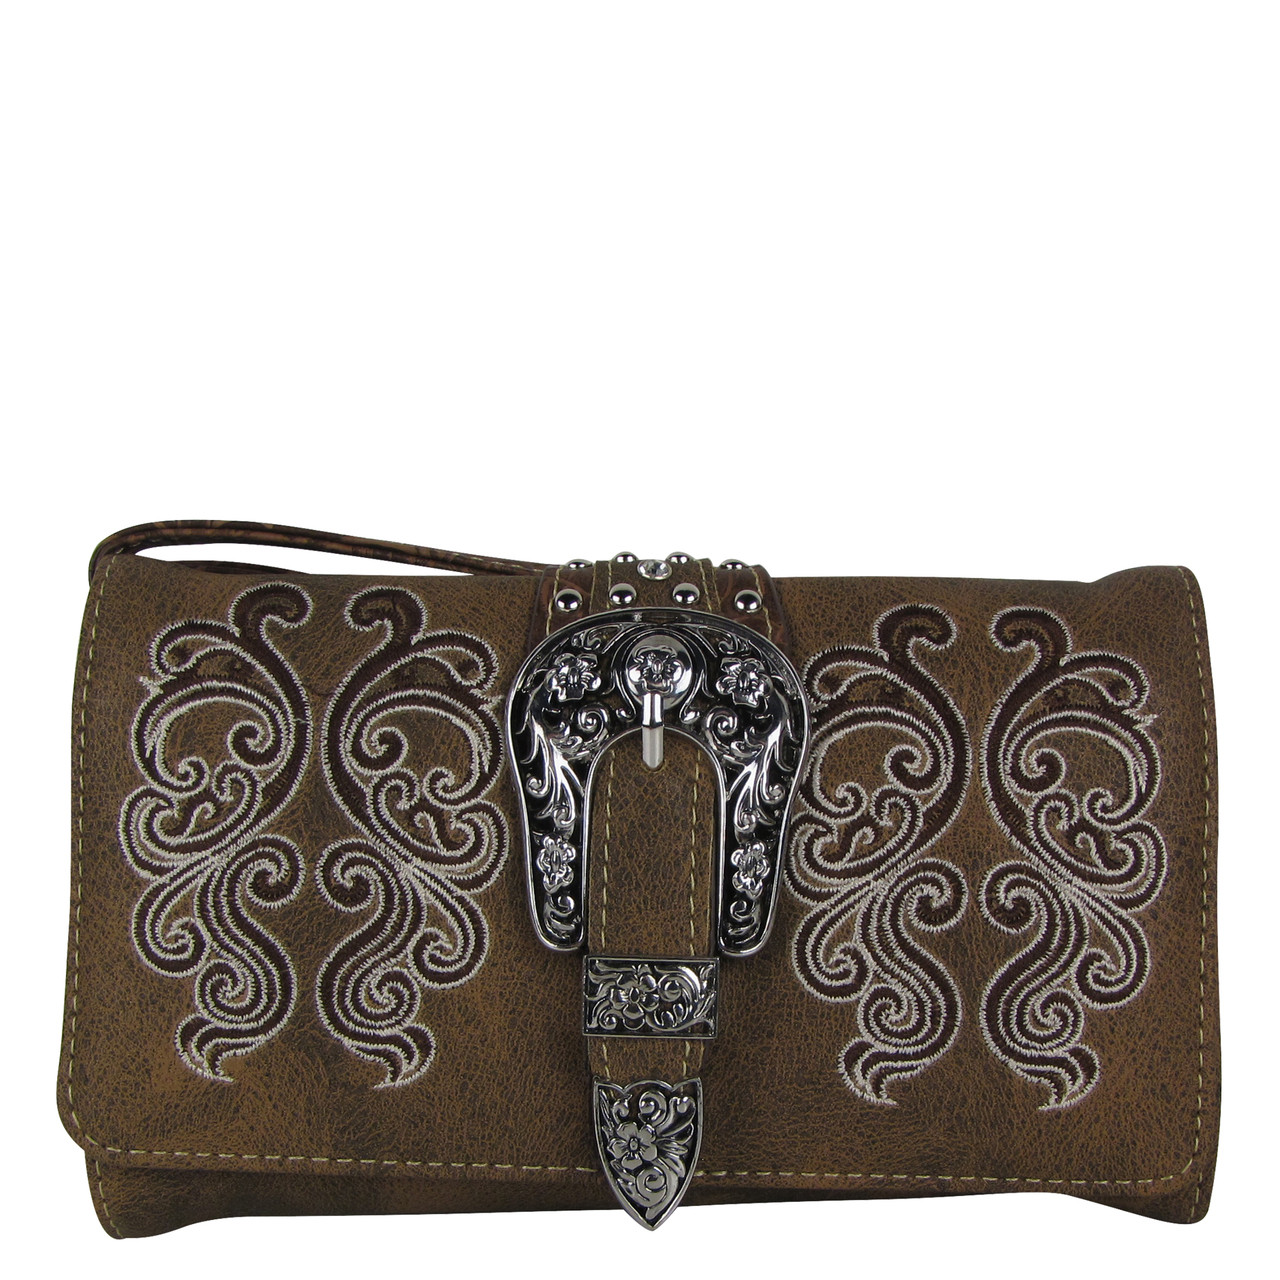 BROWN WESTERN BUCKLE LOOK CLUTCH TRIFOLD WALLET CW1-1277BRN